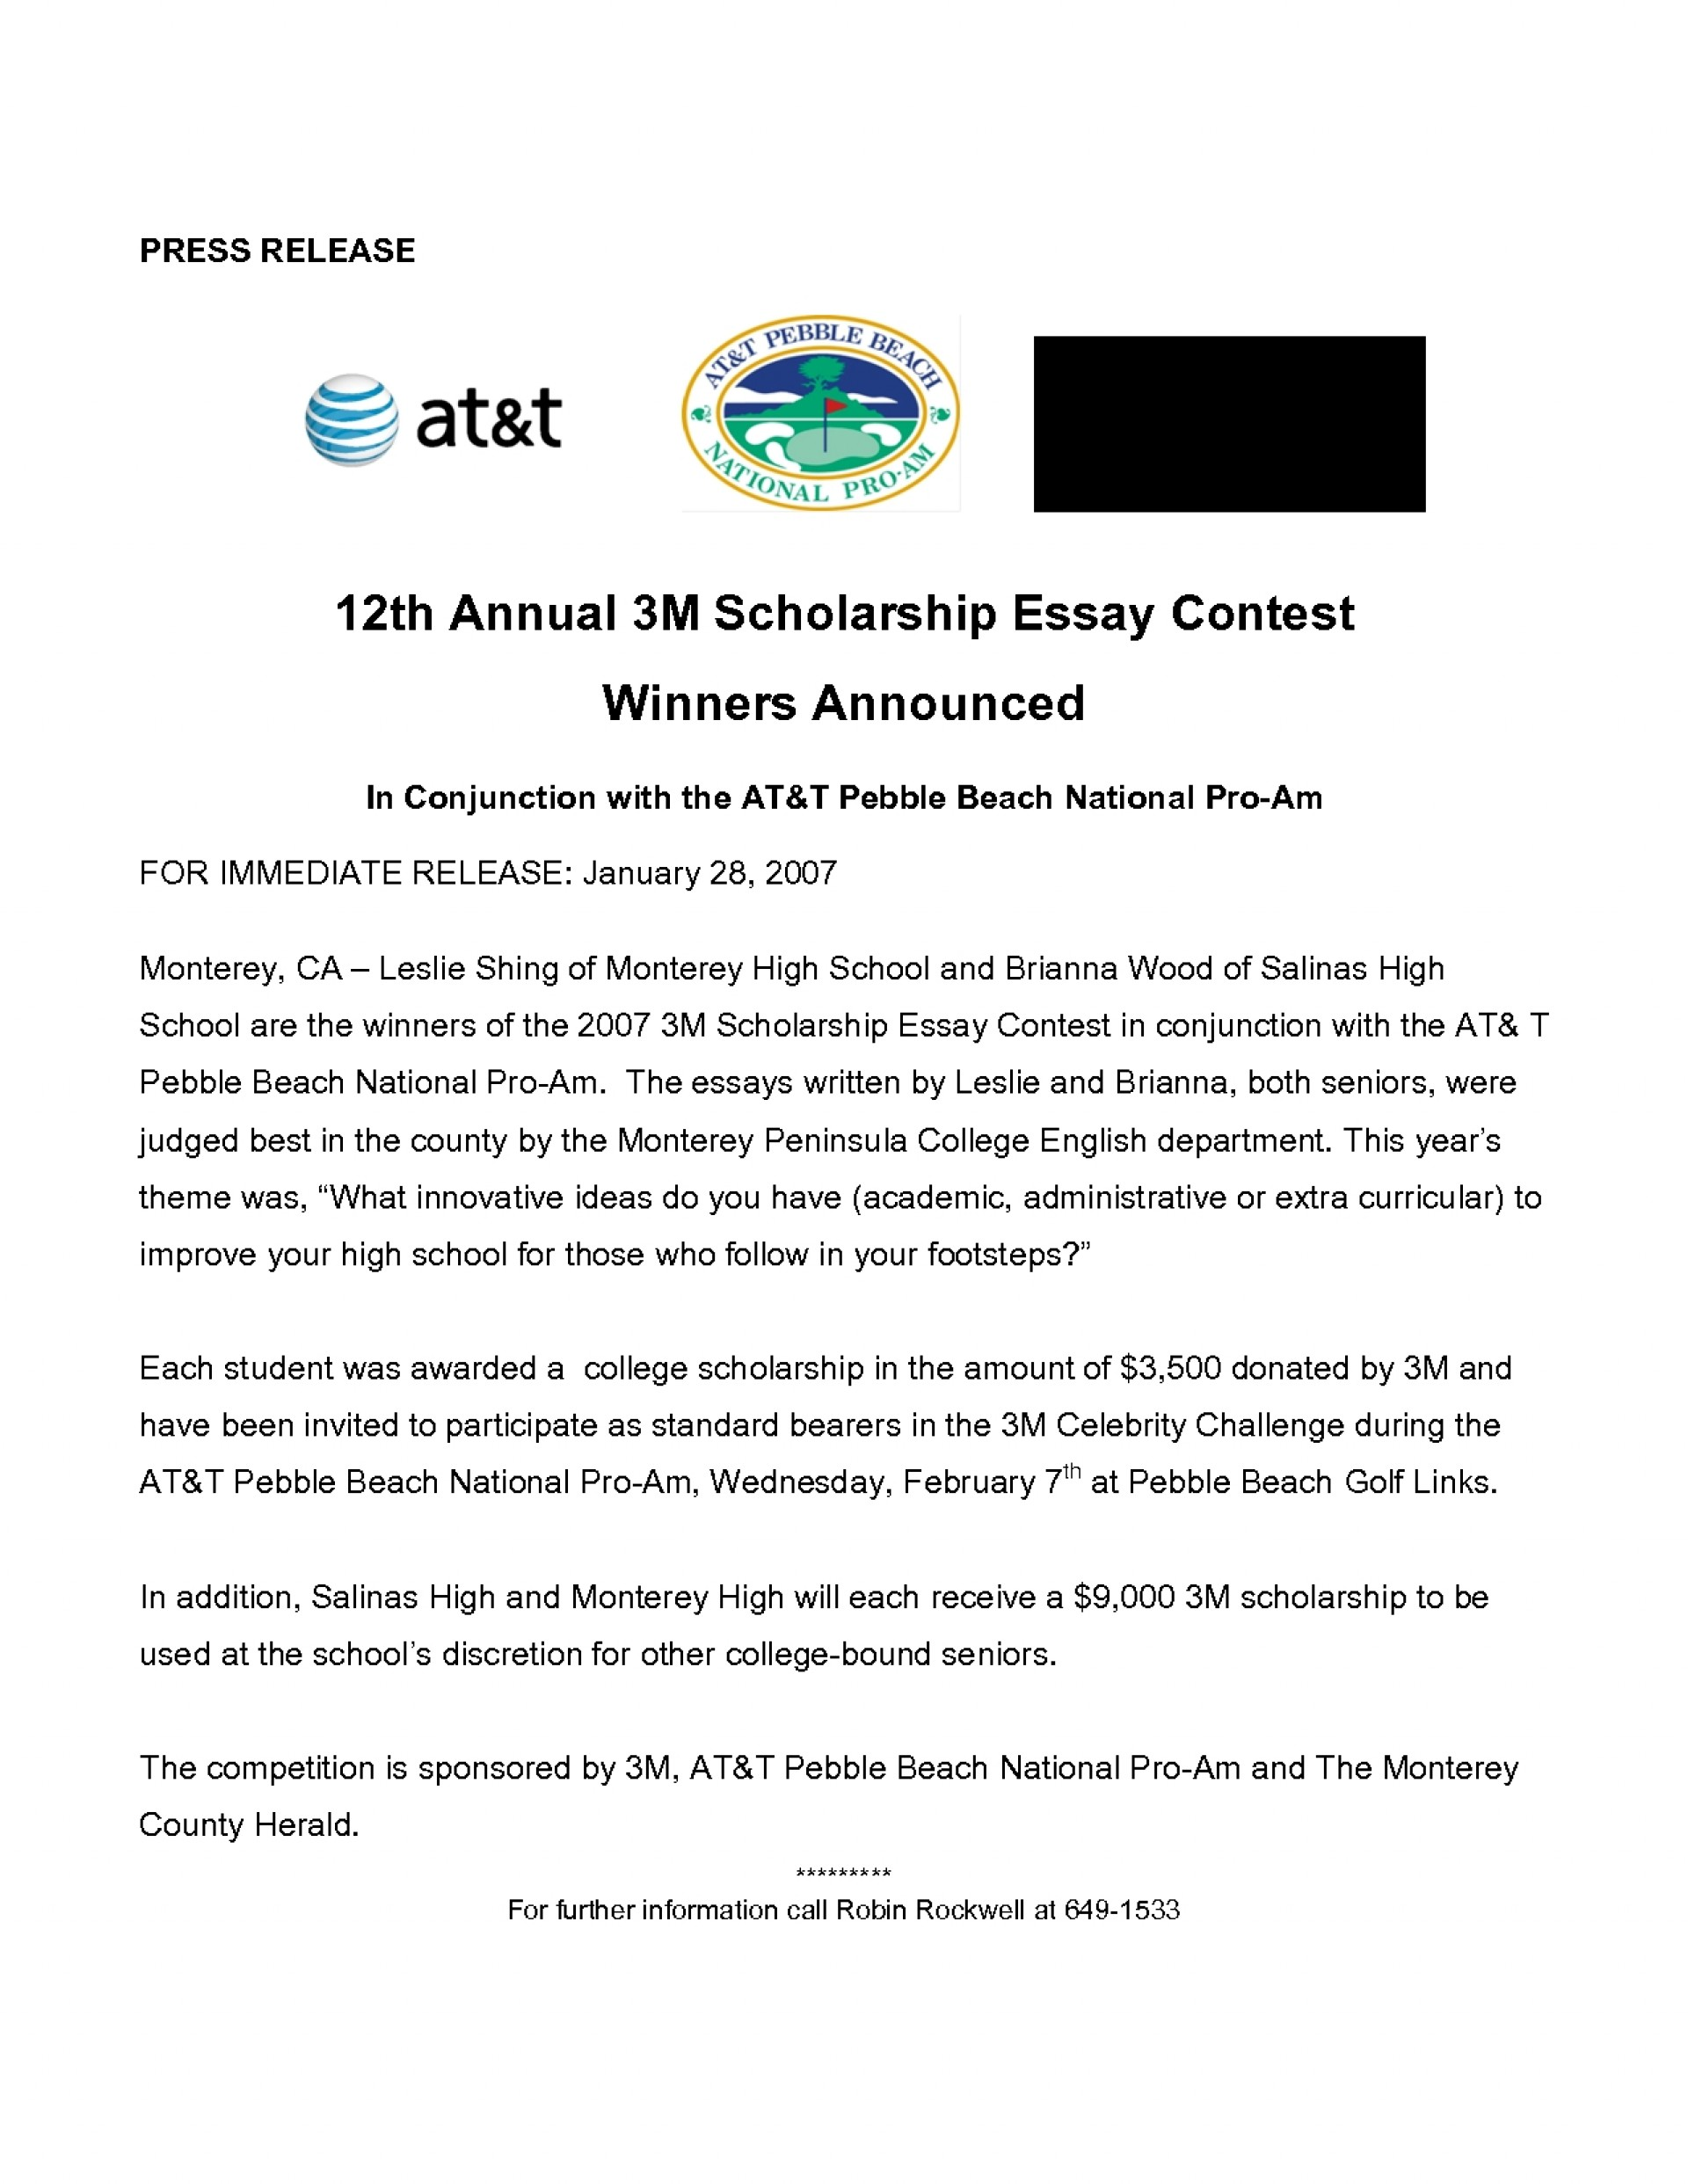 004 Scholarship Essay Contests Example High School Examples Printables Corner Contest Scholarships For College Students Application He Stupendous Middle Seniors 1920